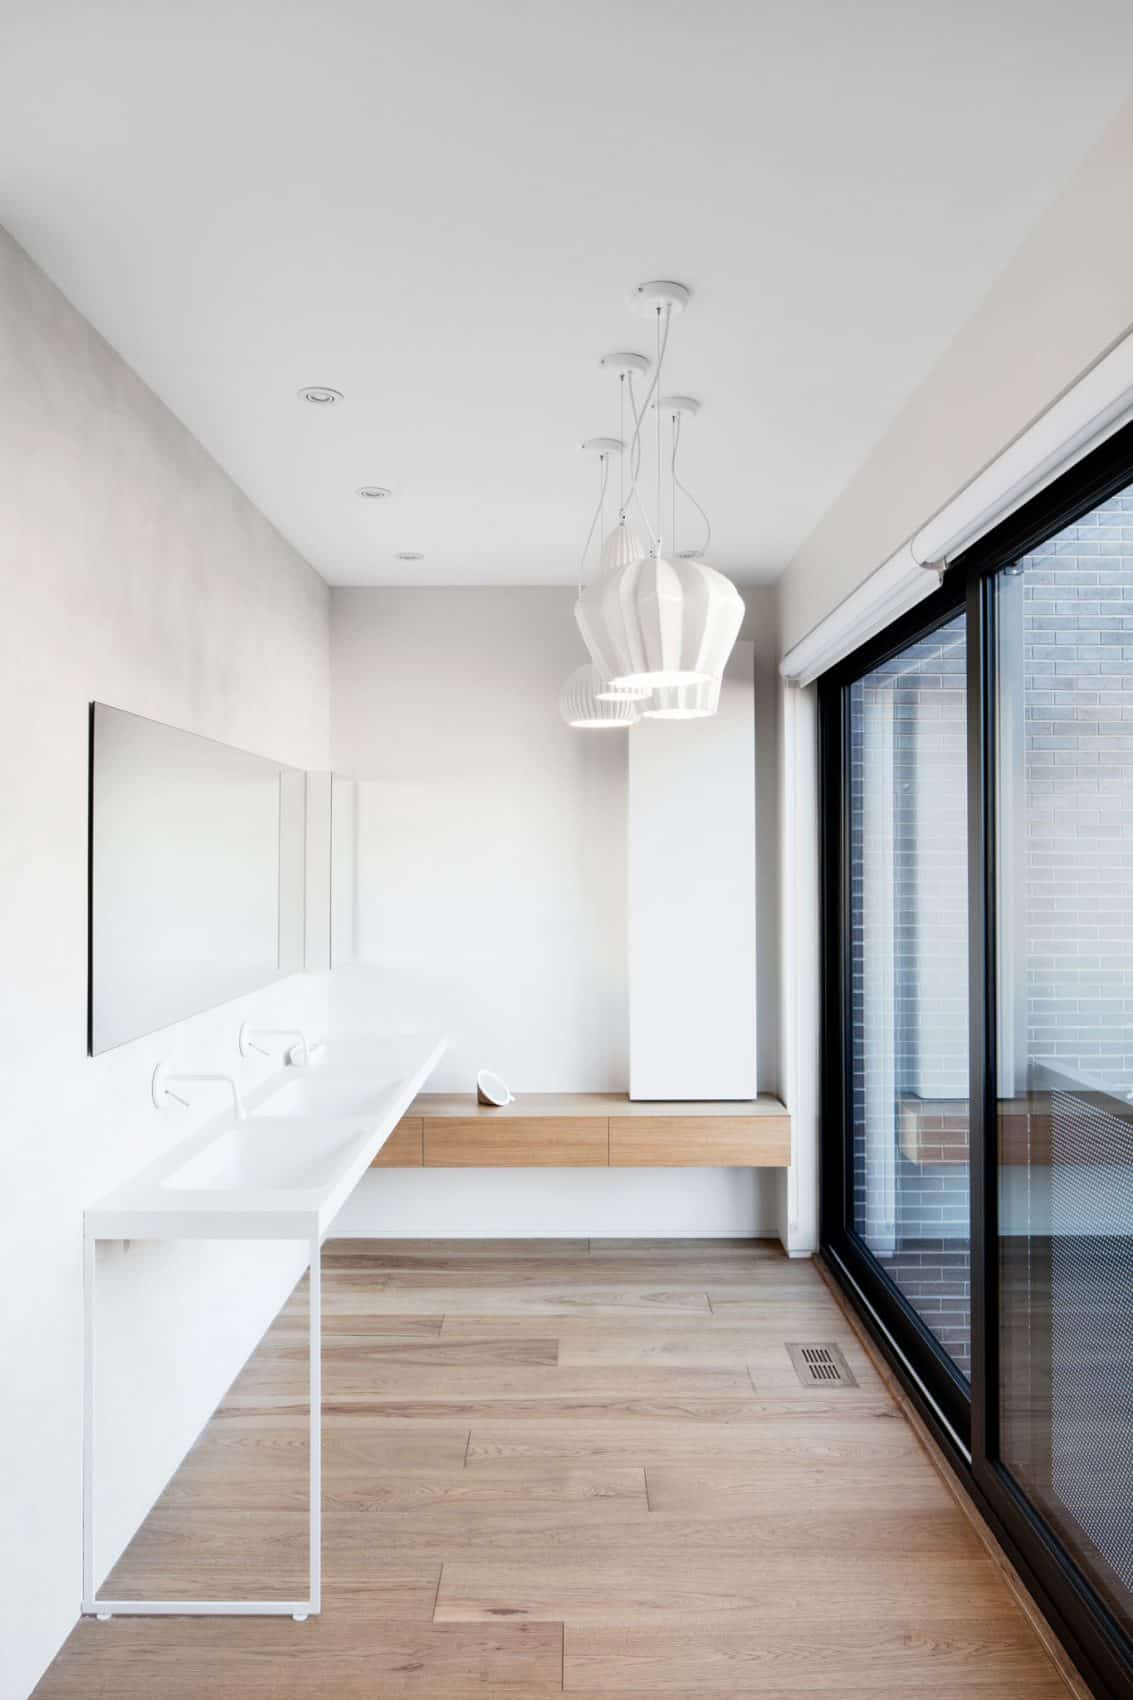 Bathroom decorated in white and wood